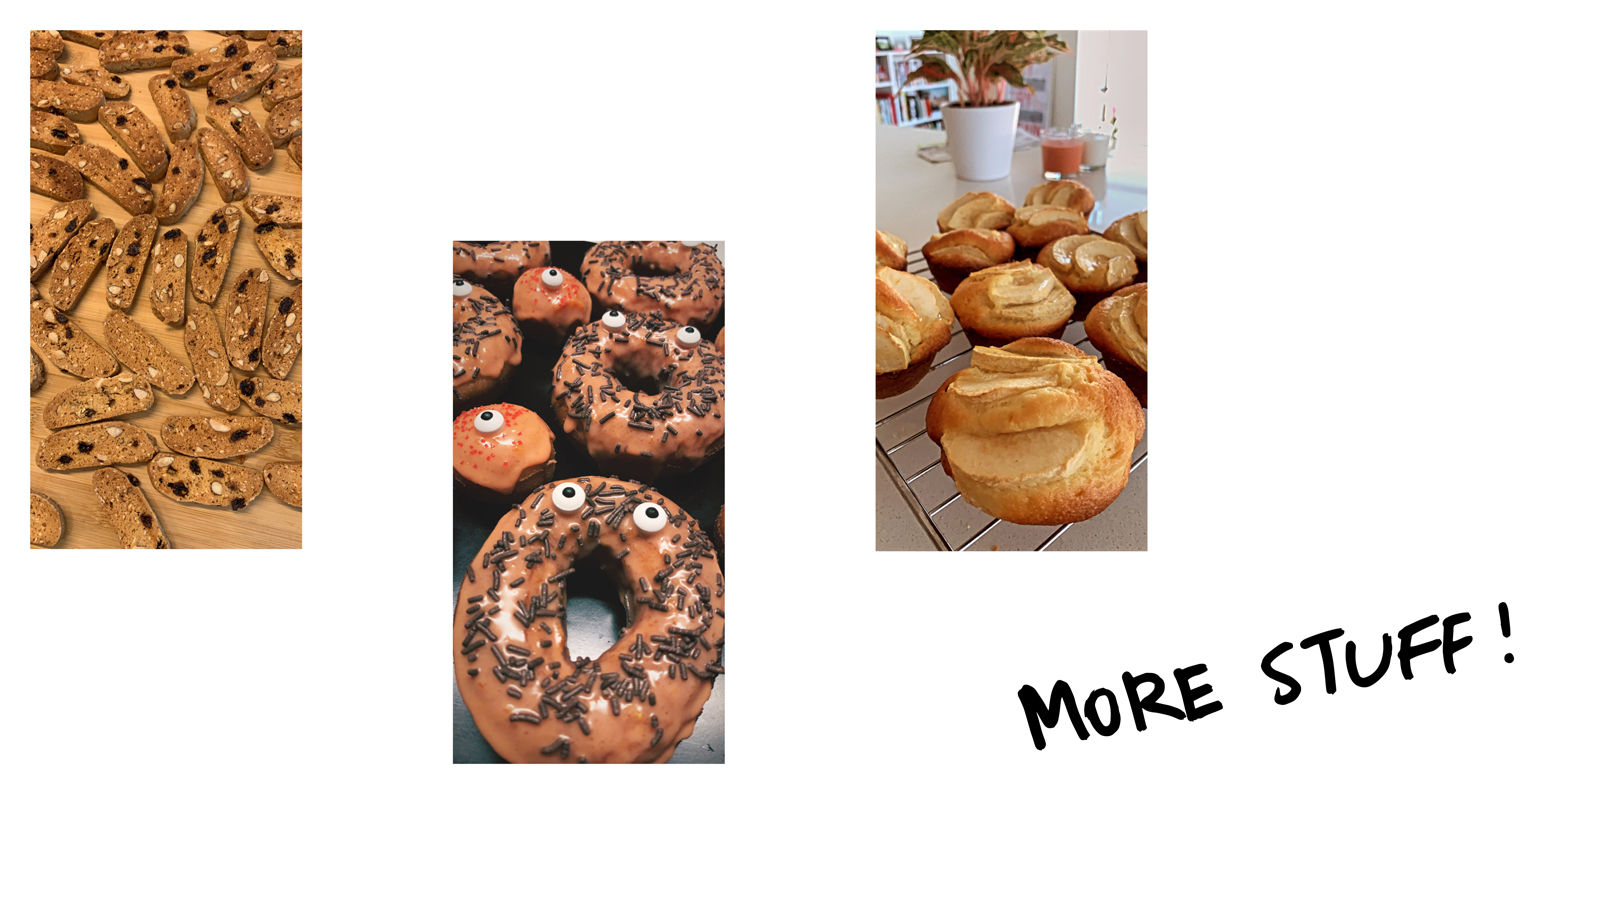 Fekkas, donuts and apple muffins